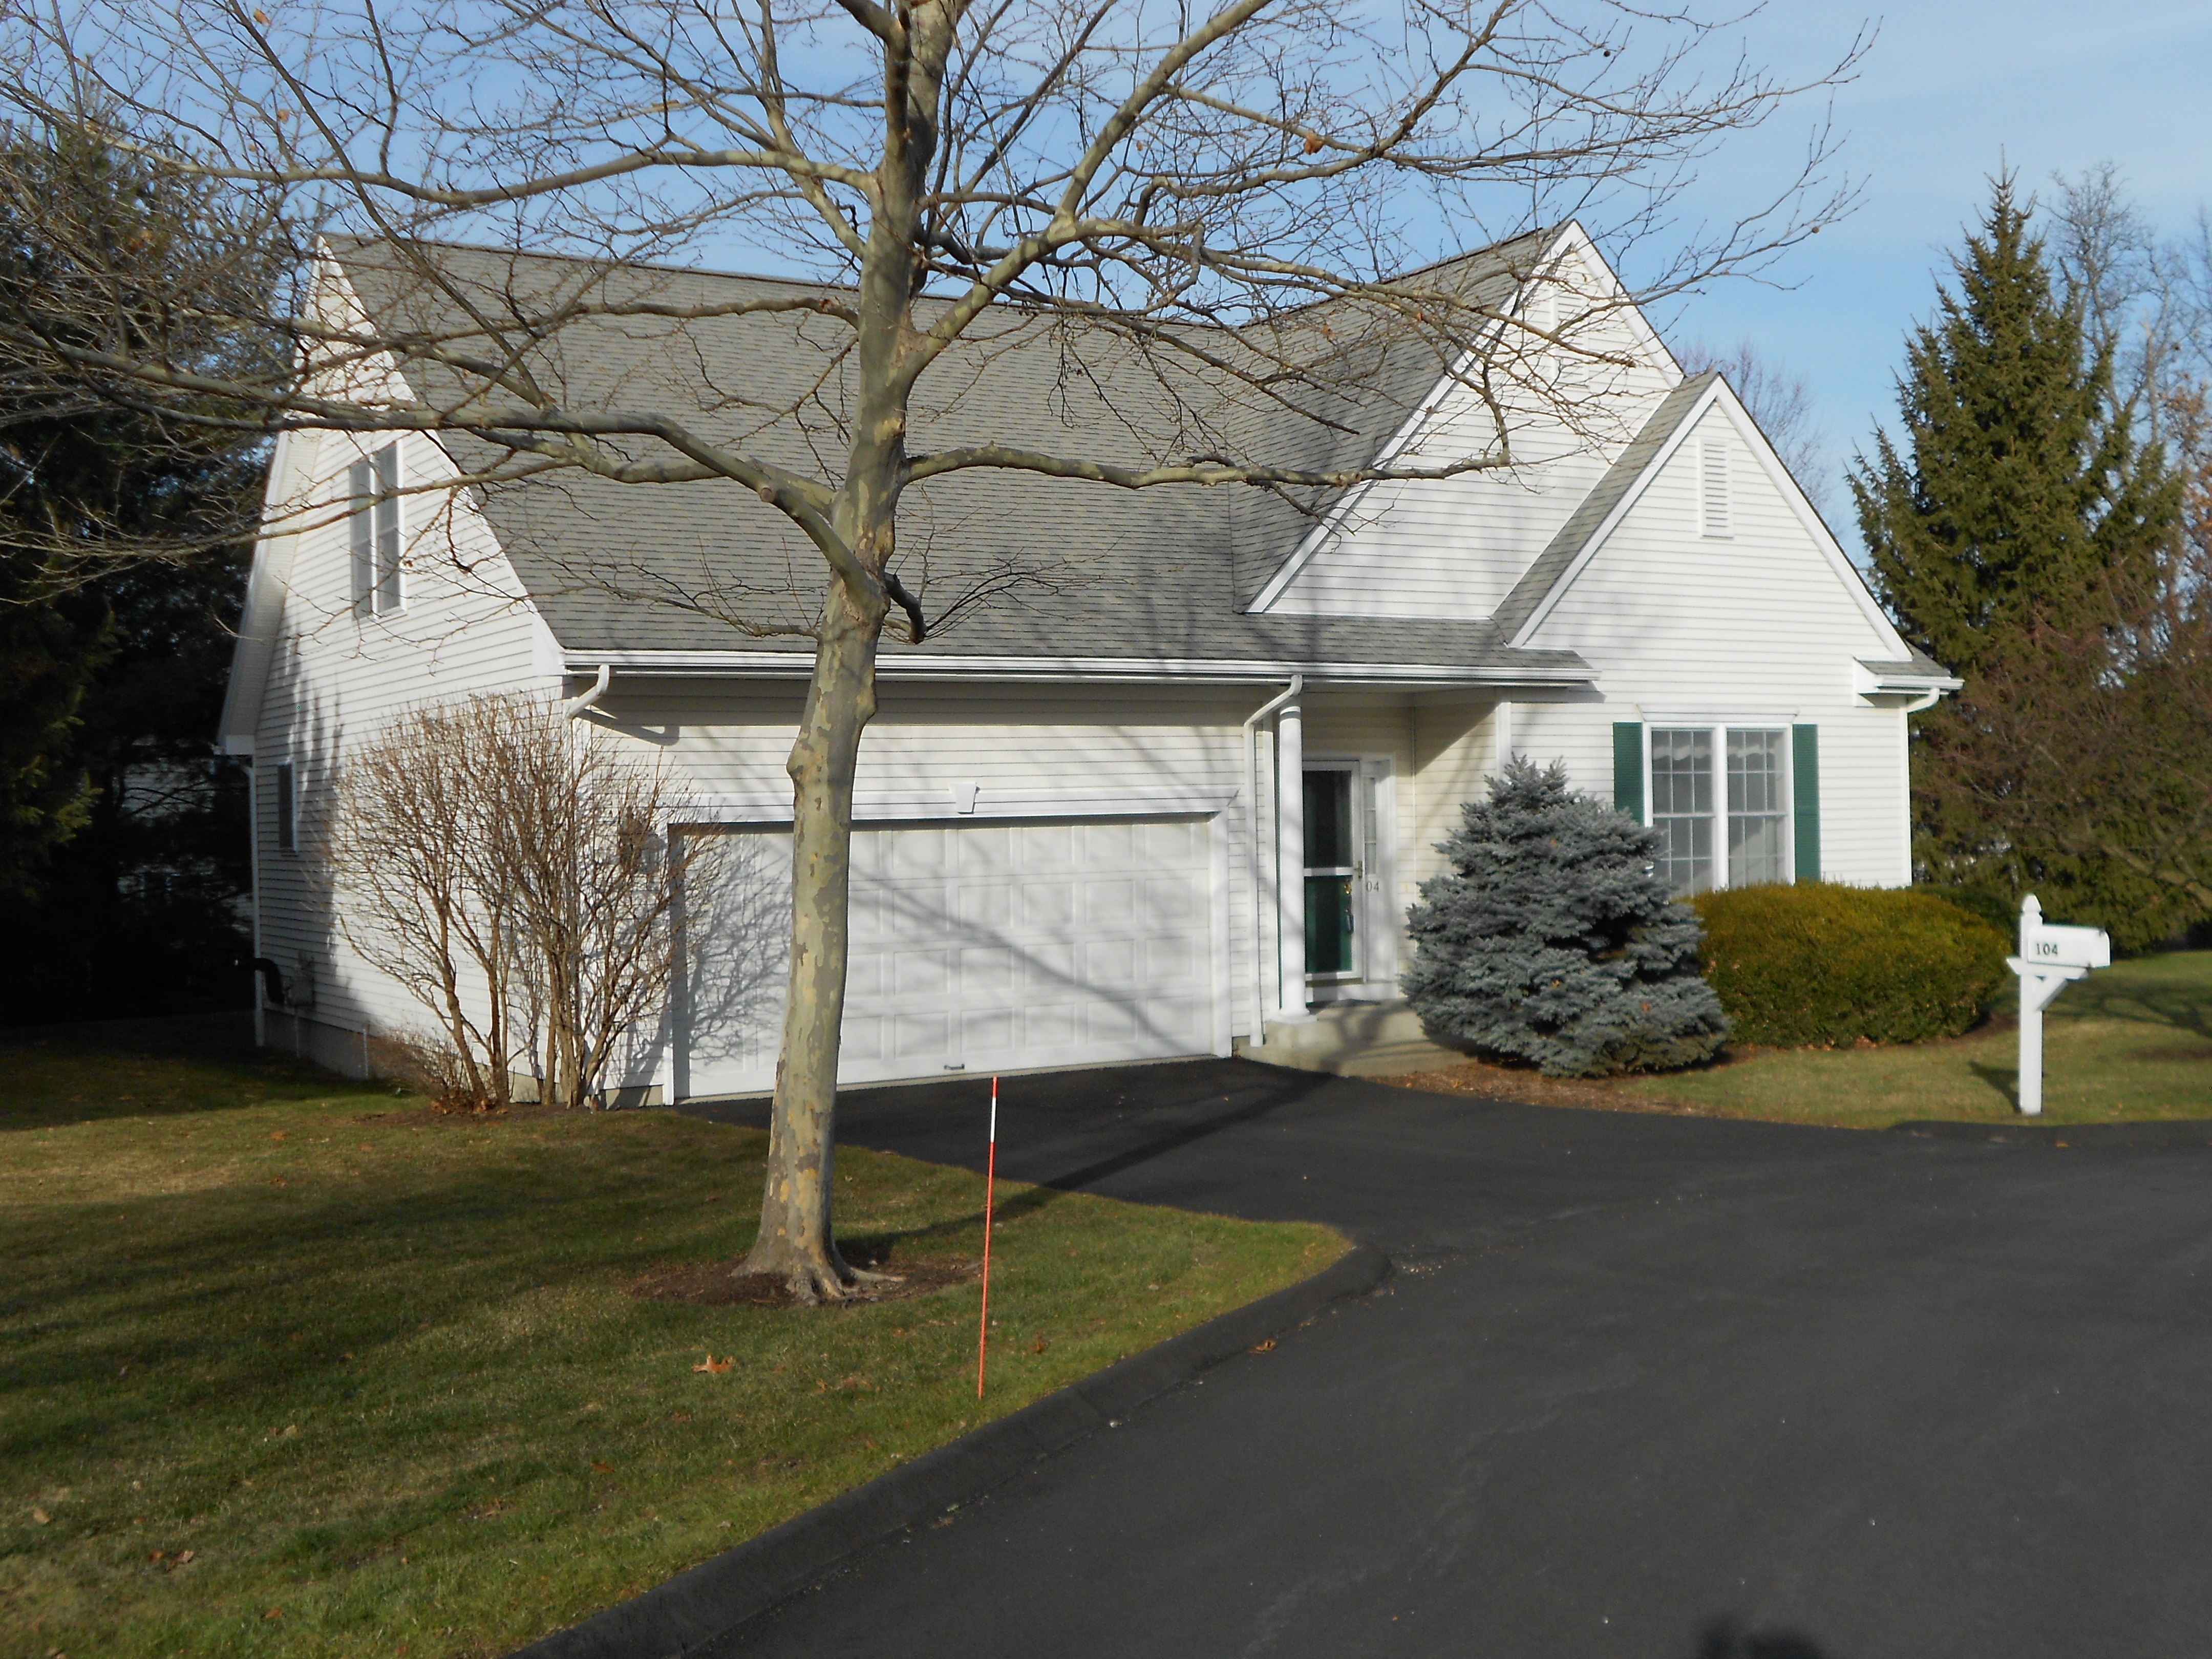 Condominium for Sale at Colonial with Condo Benefits 104 Silversmith Drive Danbury, Connecticut, 06811 United States